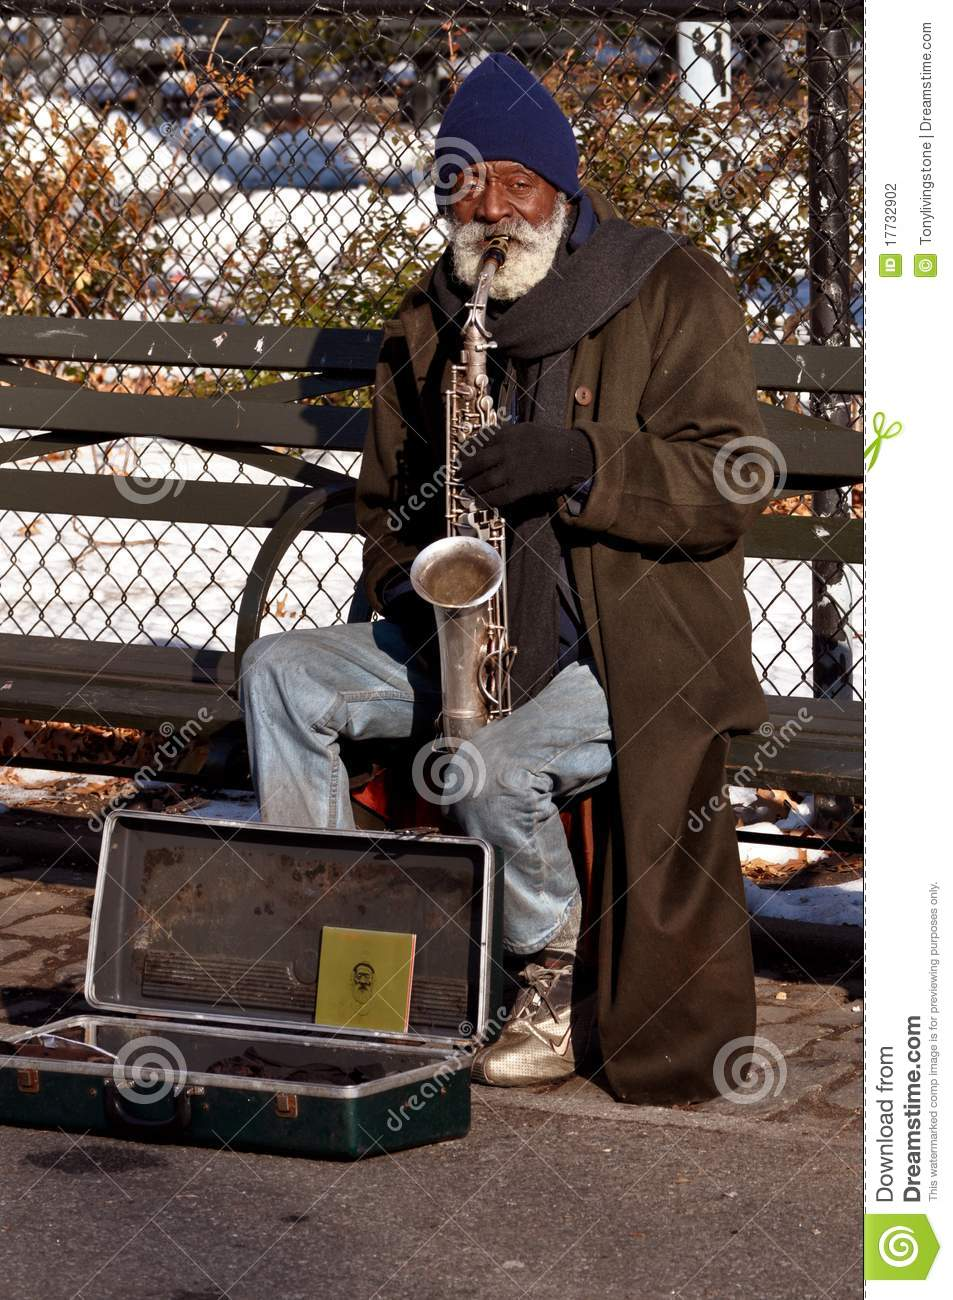 Homeless Musician Editorial Photography Image 17732902